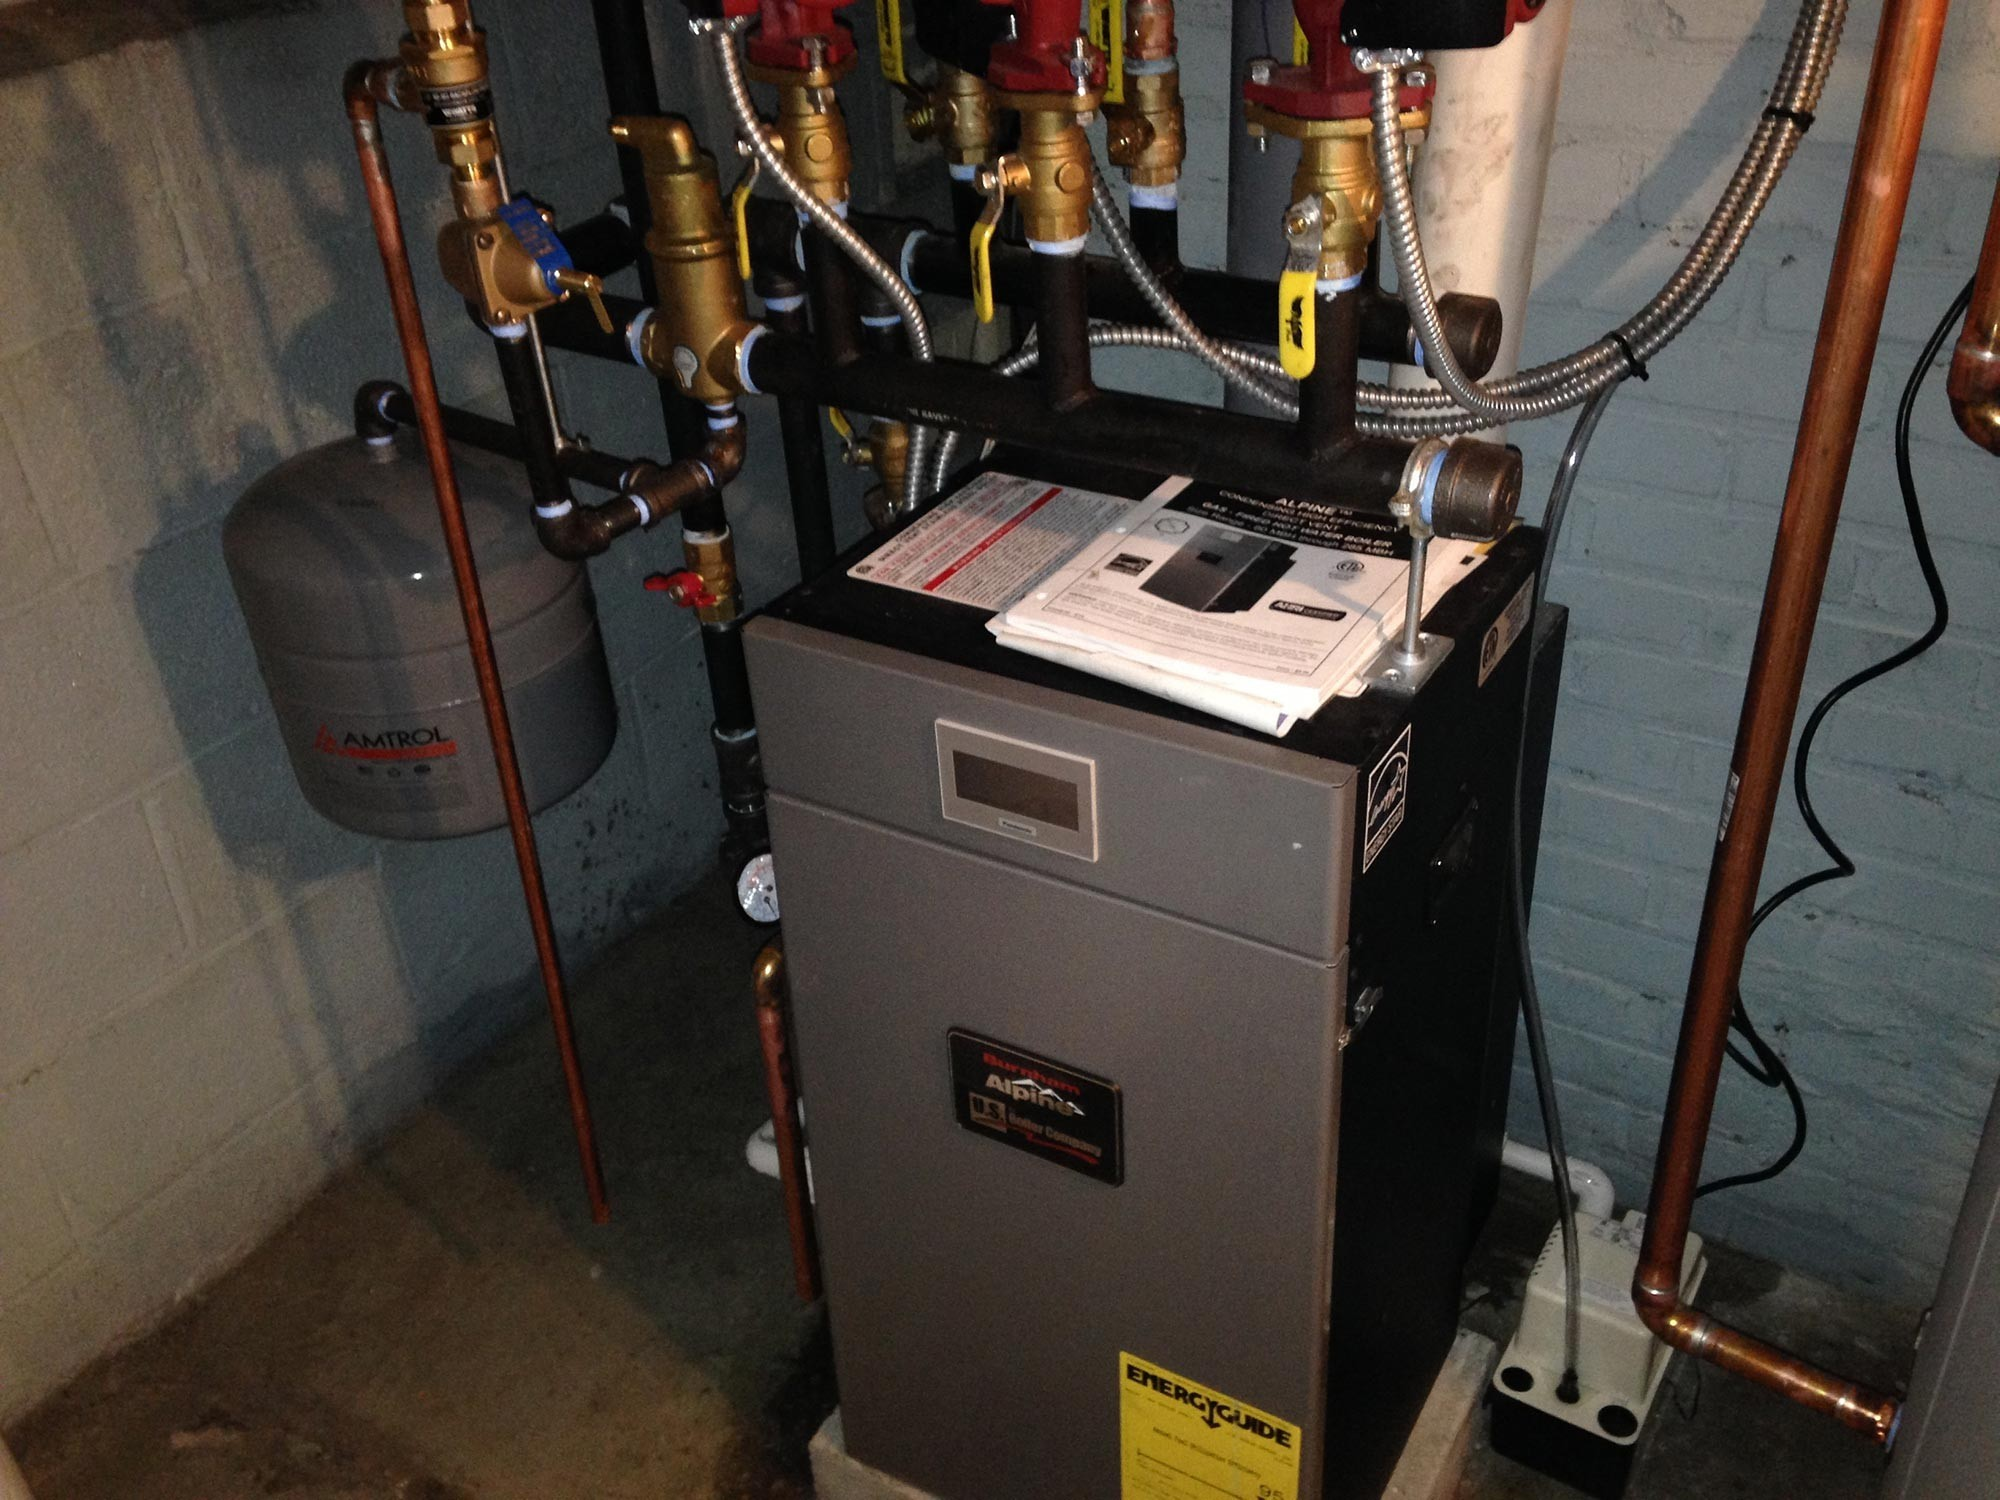 High Efficiency Gas Boiler Photo Gallery | Cooling Unlimited, Inc.